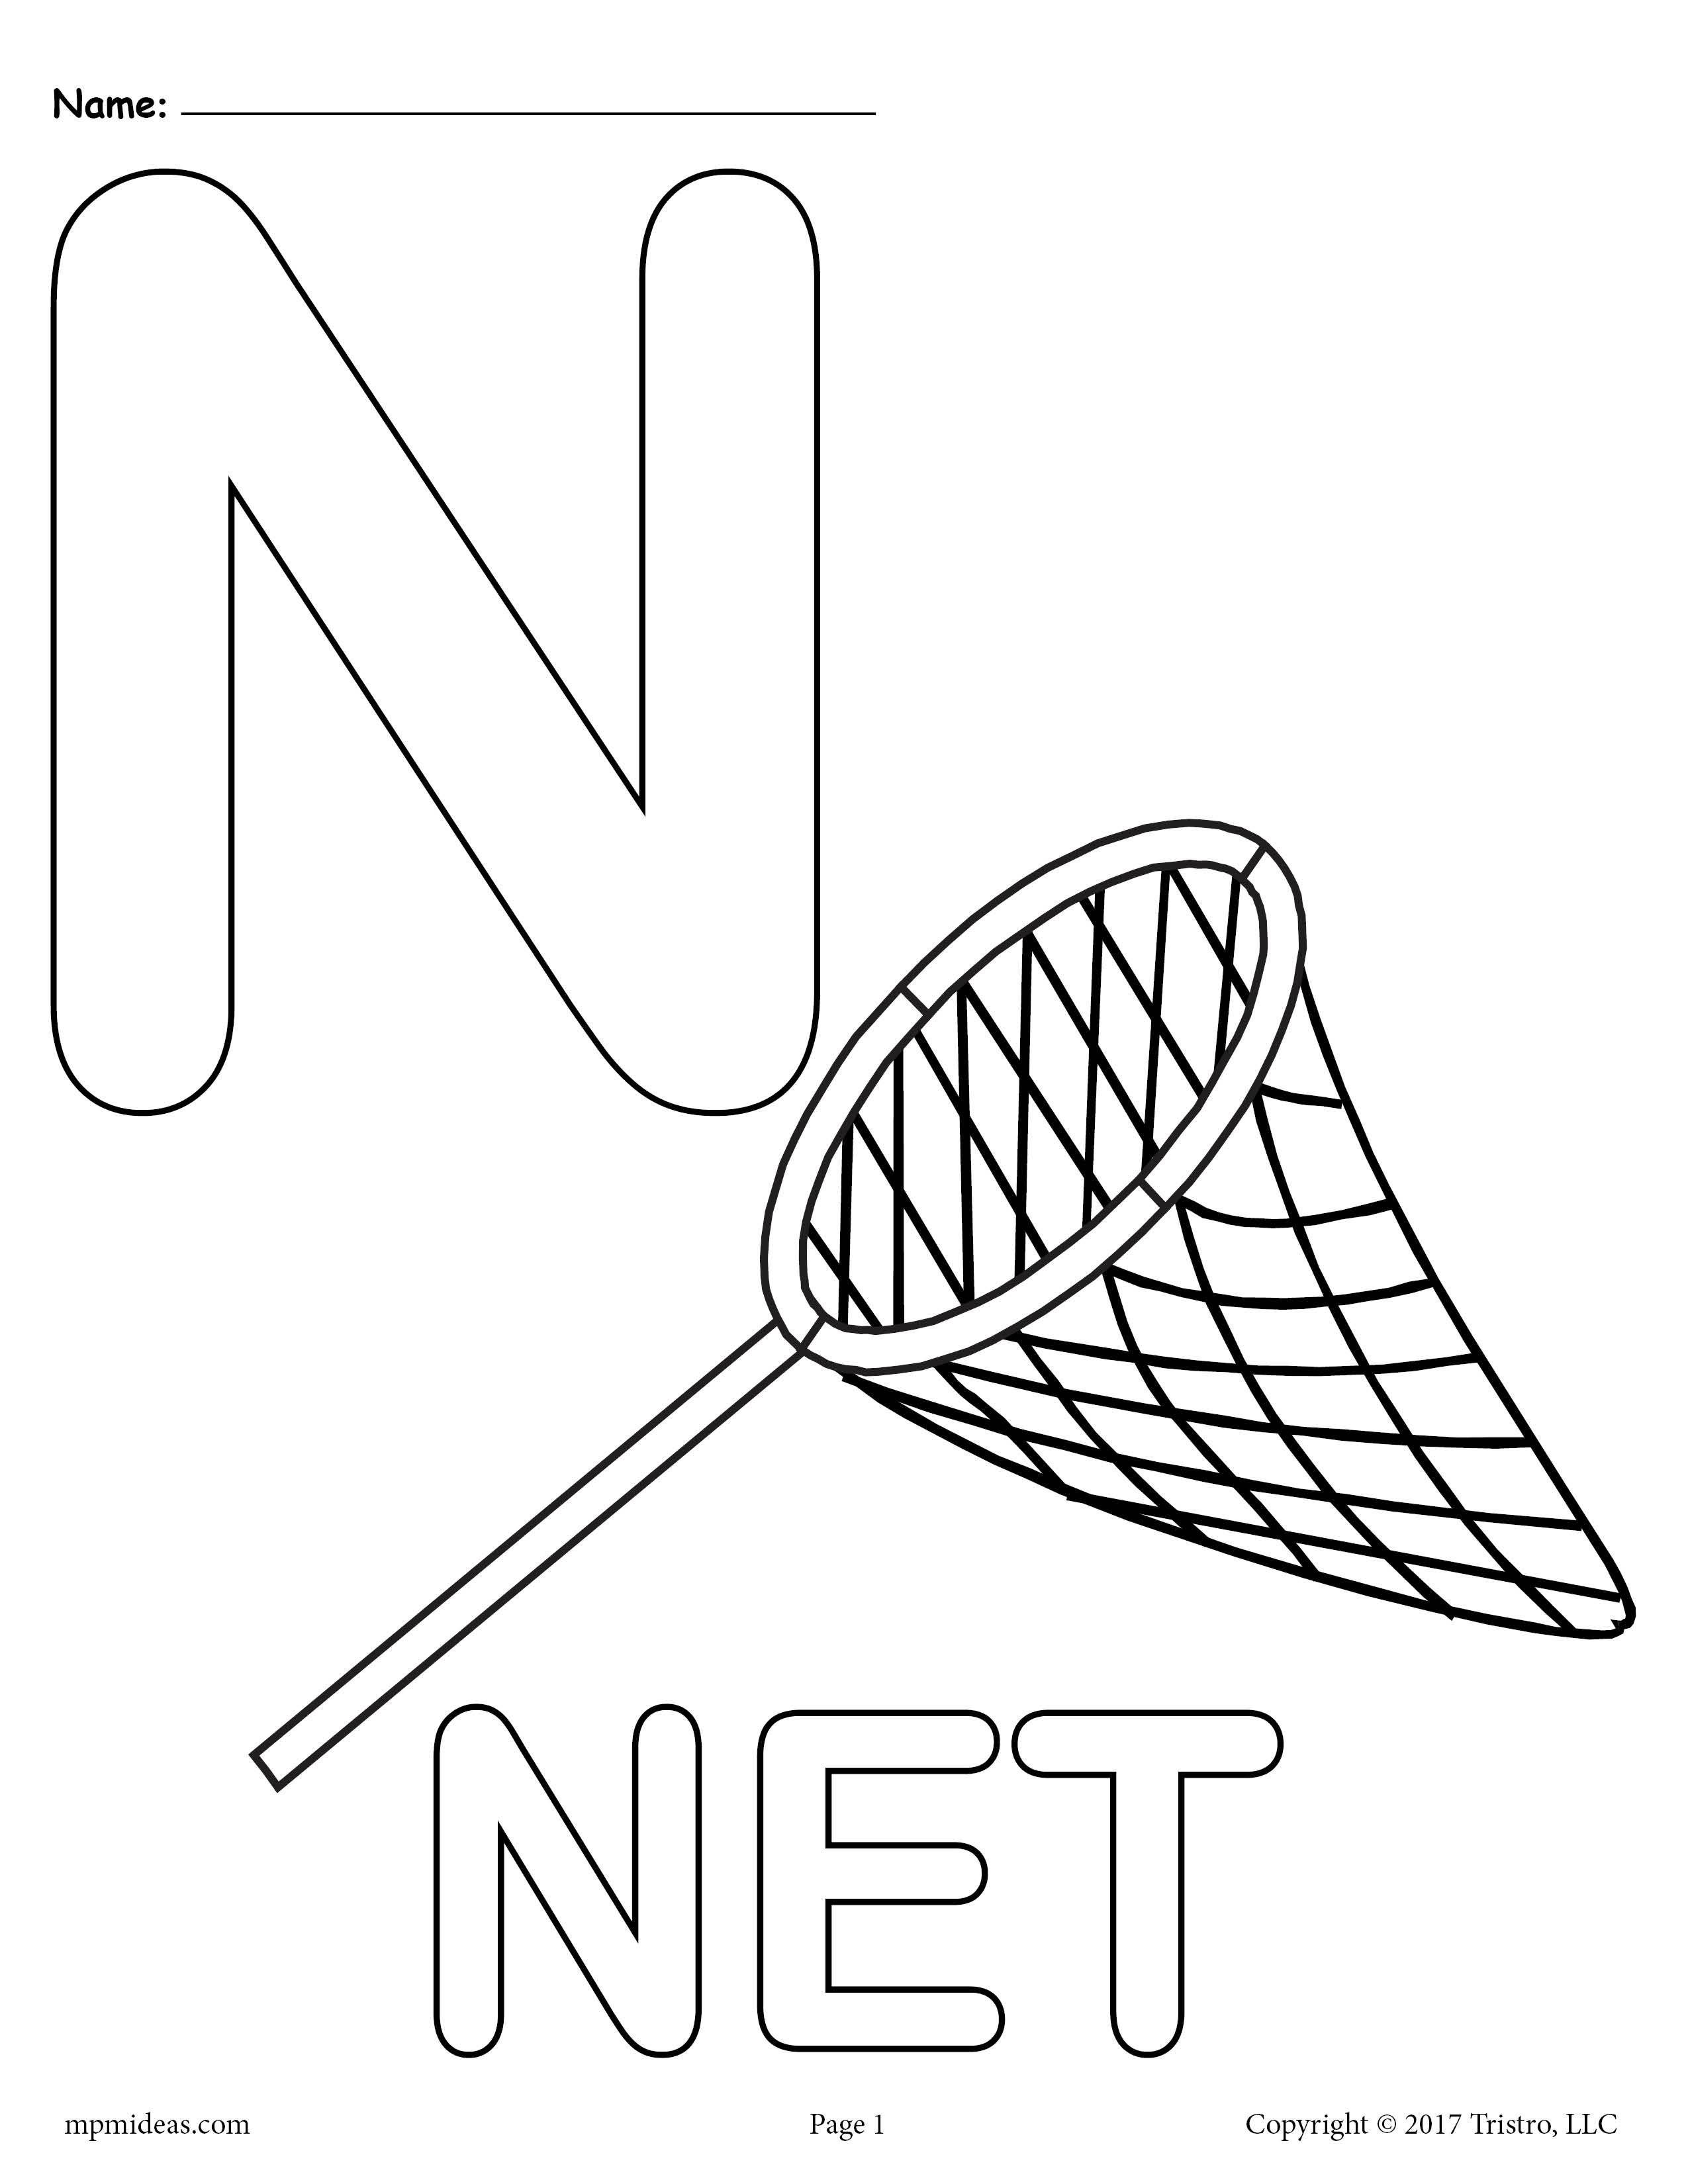 Letter N Alphabet Coloring Pages 3 Printable Versions Alphabet Coloring Pages Letter N Crafts Alphabet Coloring [ 3300 x 2550 Pixel ]